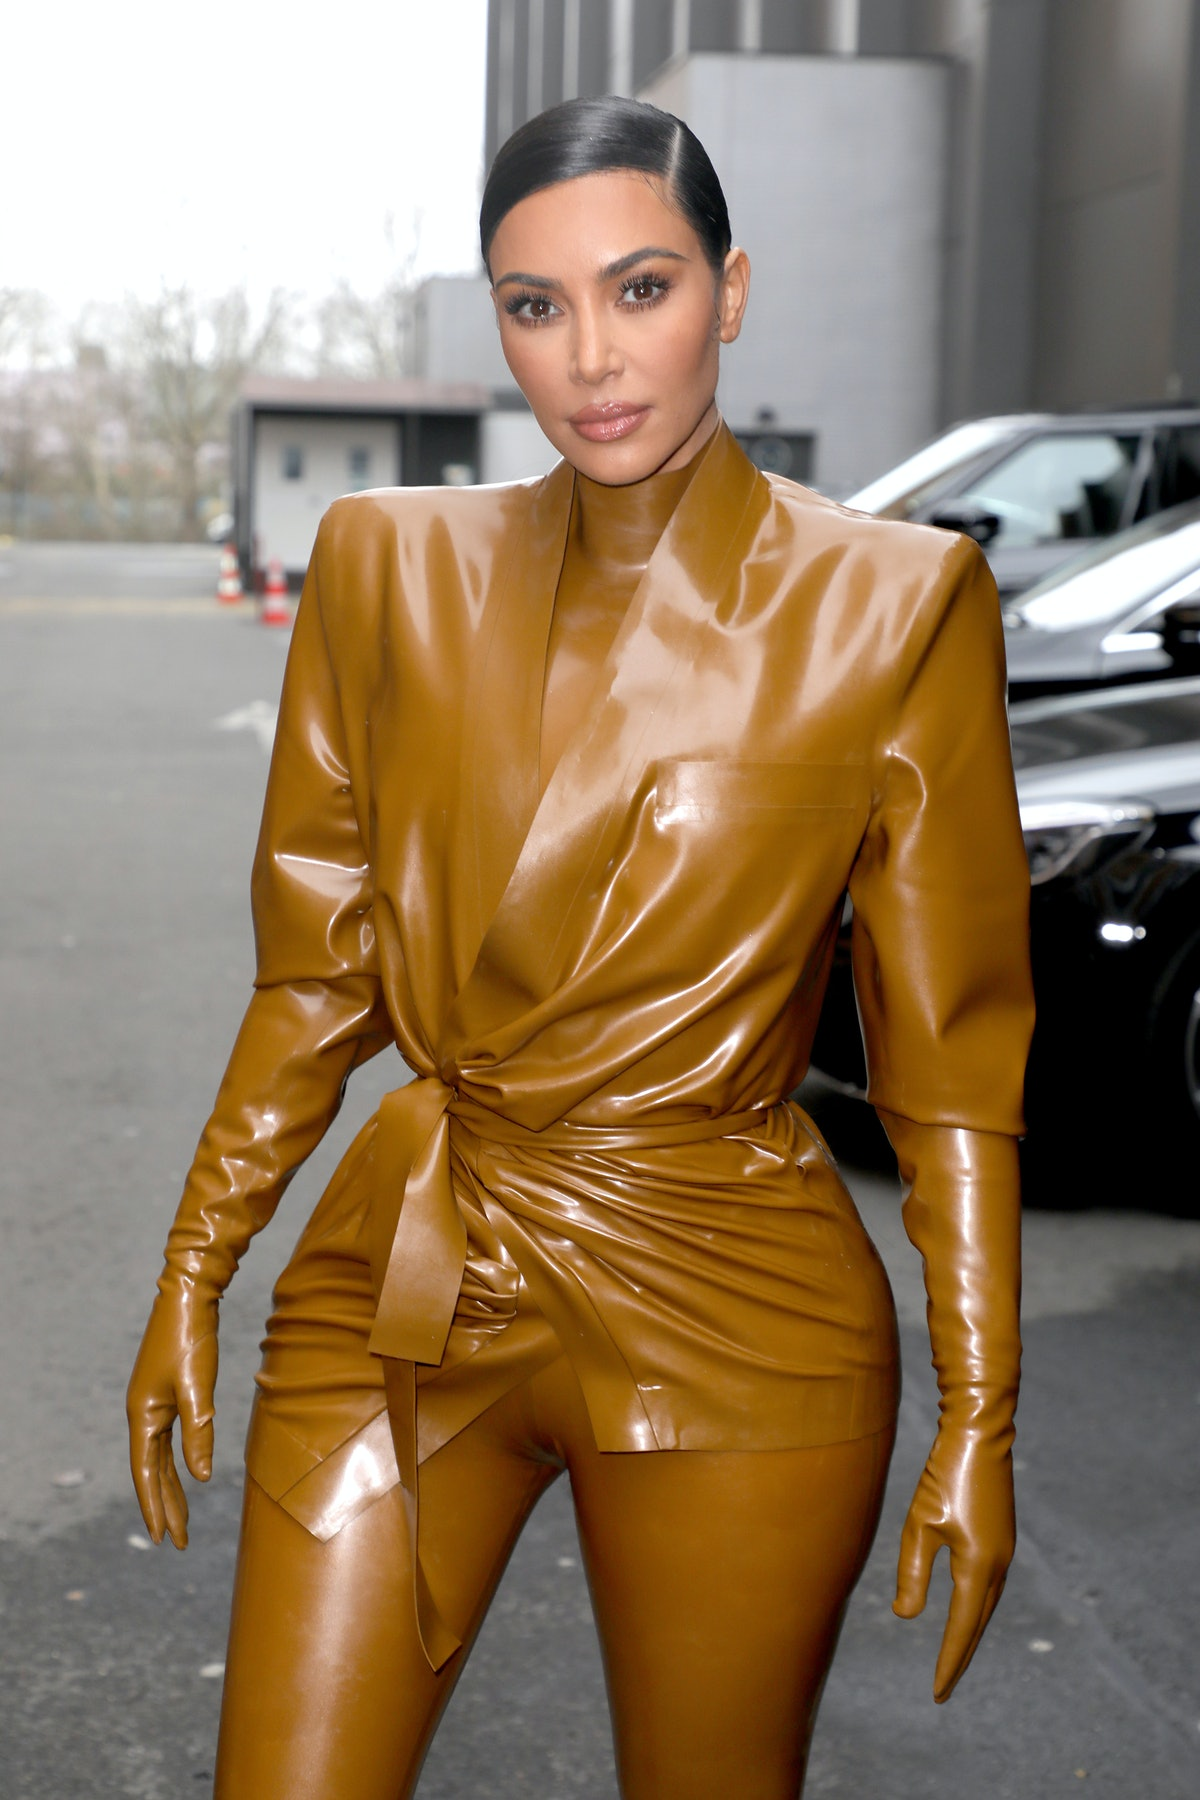 PARIS, FRANCE - MARCH 01: (EDITORIAL USE ONLY) Kim Kardashian attends the Balenciaga show as part of...